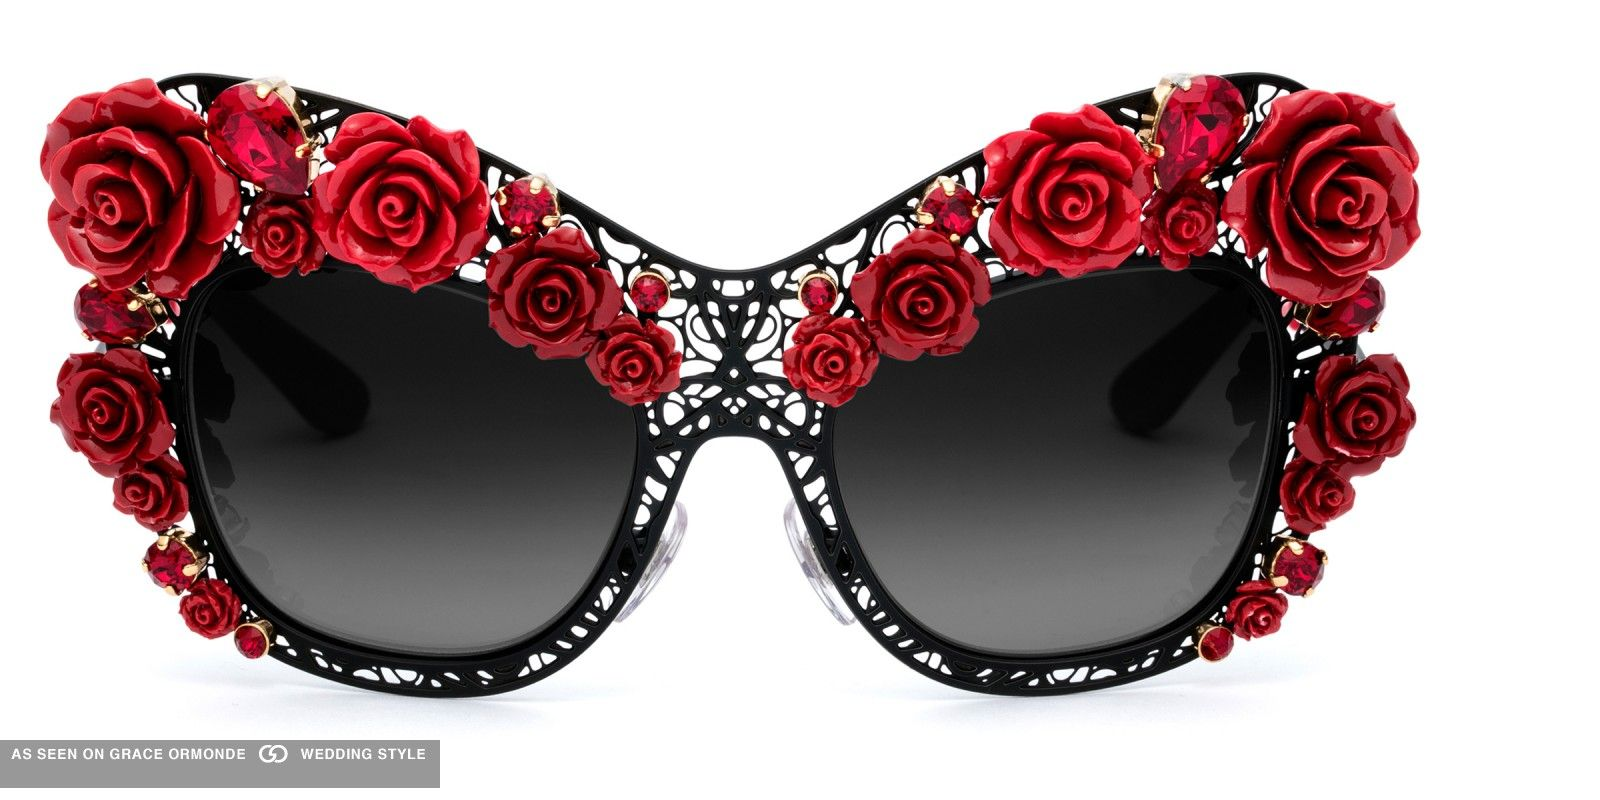 39b4622dd8 dolce and gabbana sunglasses red roses black frame